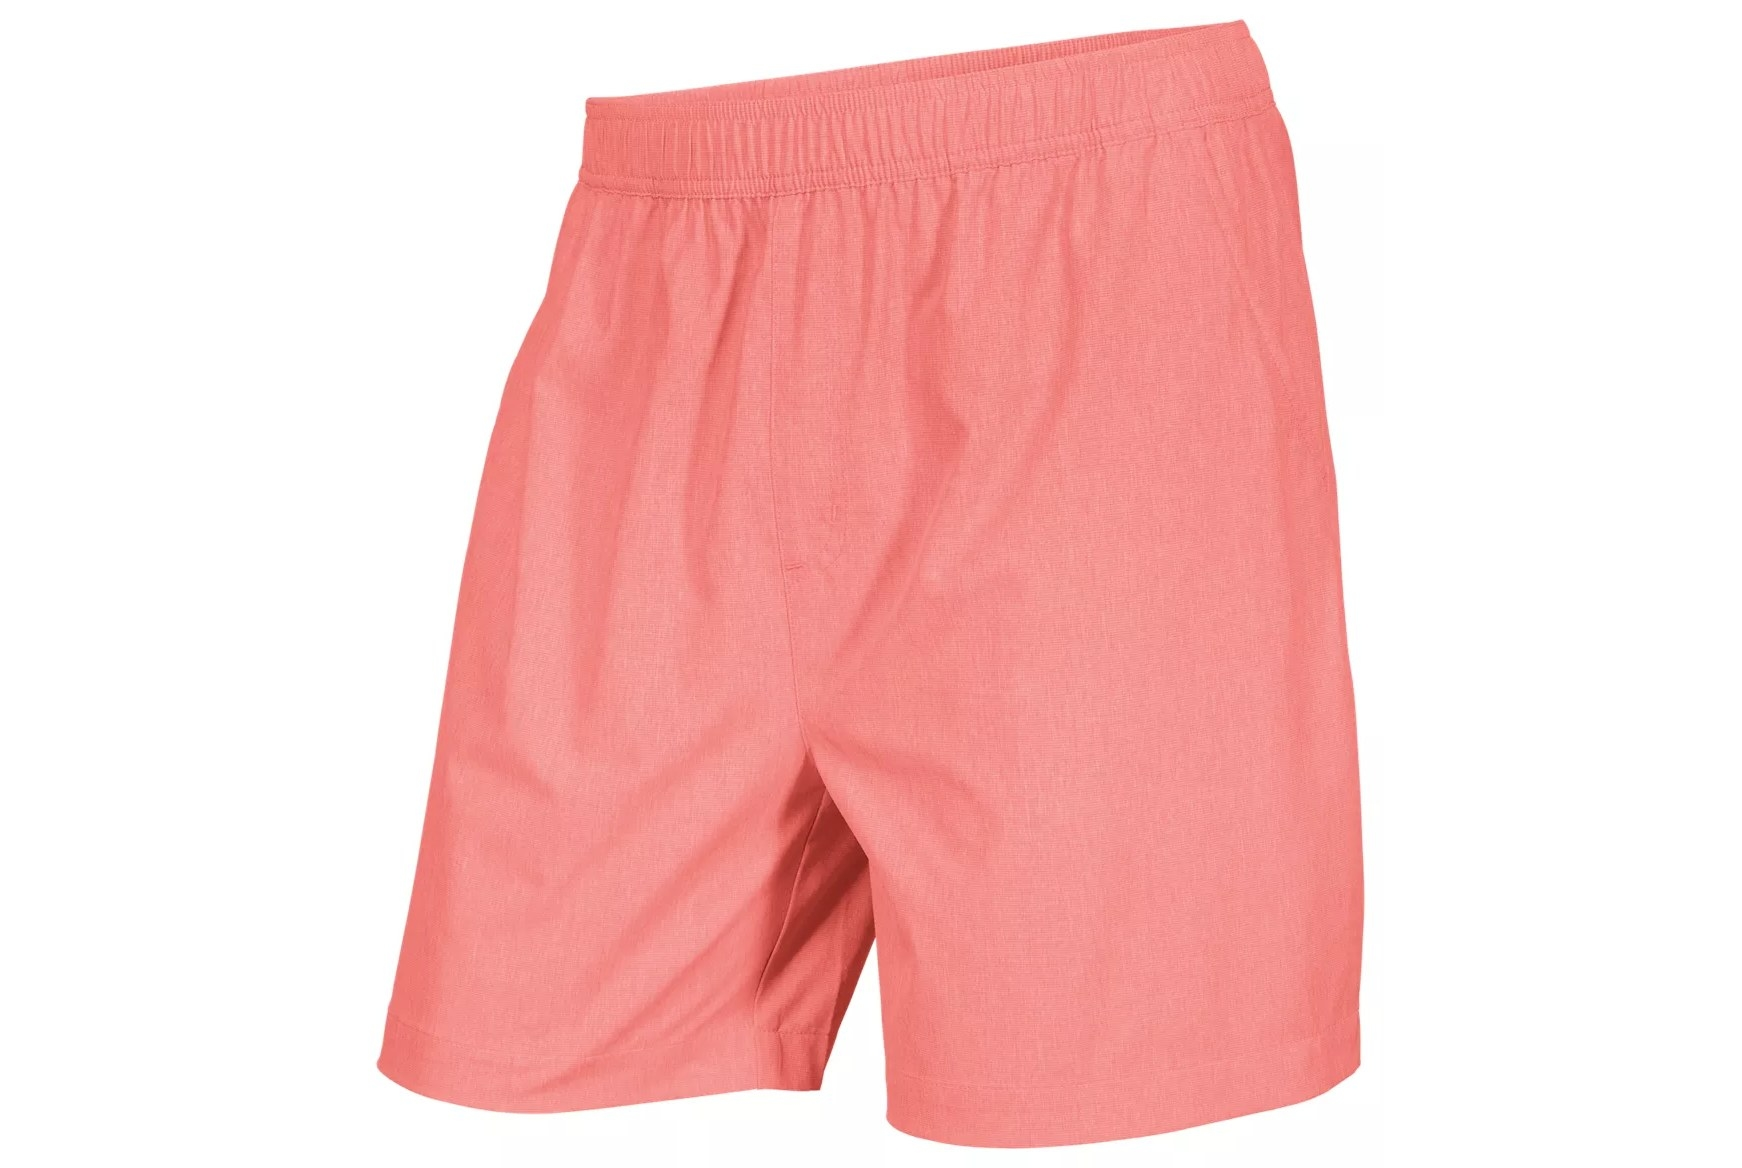 The shorts in spiced coral